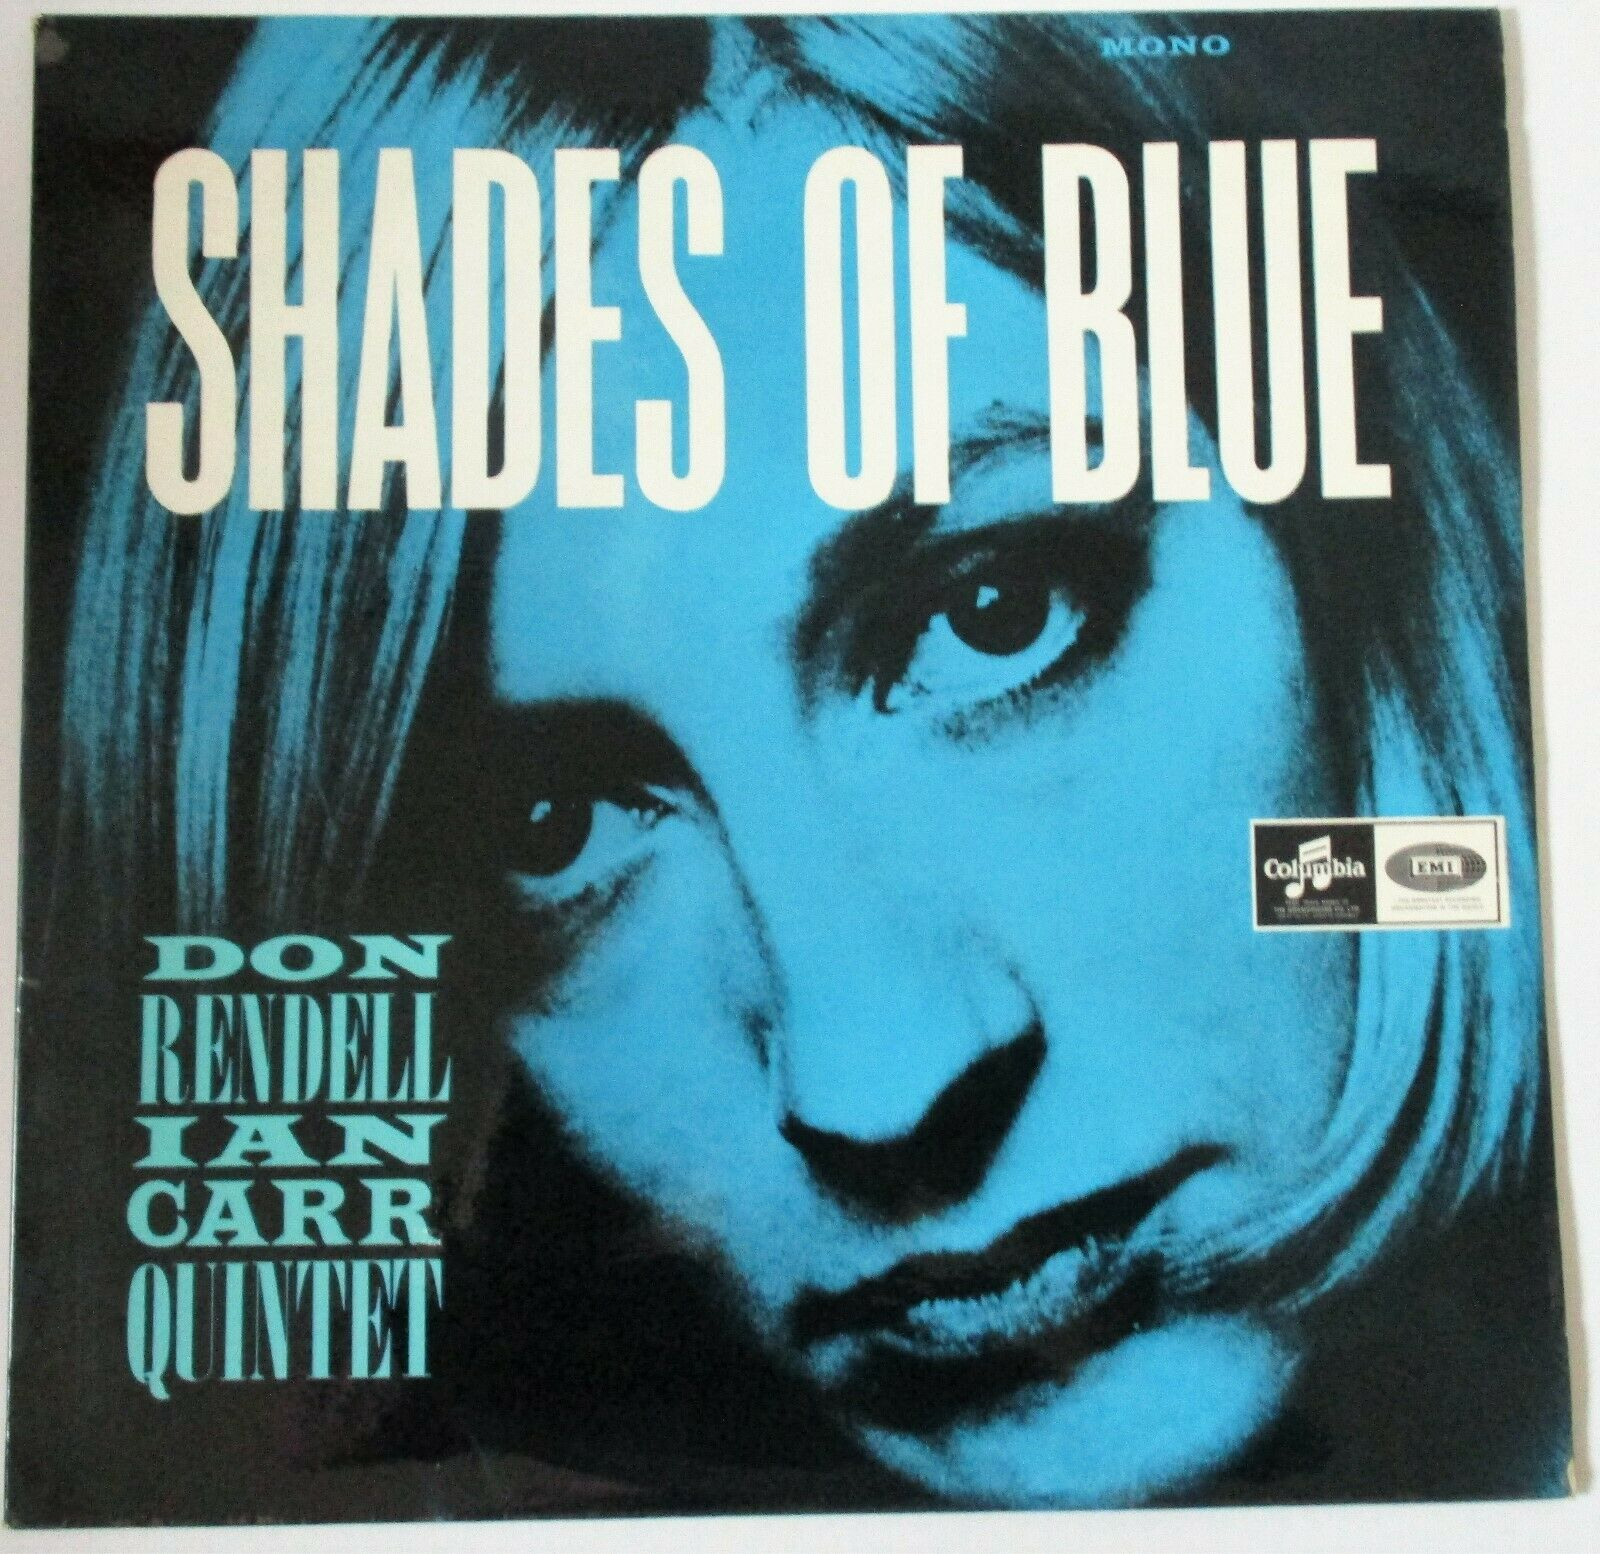 DON RENDELL IAN CARR QUARTET SHADES OF BLUE 1965 COLUMBIA  ORIGINAL HOLY GRAIL